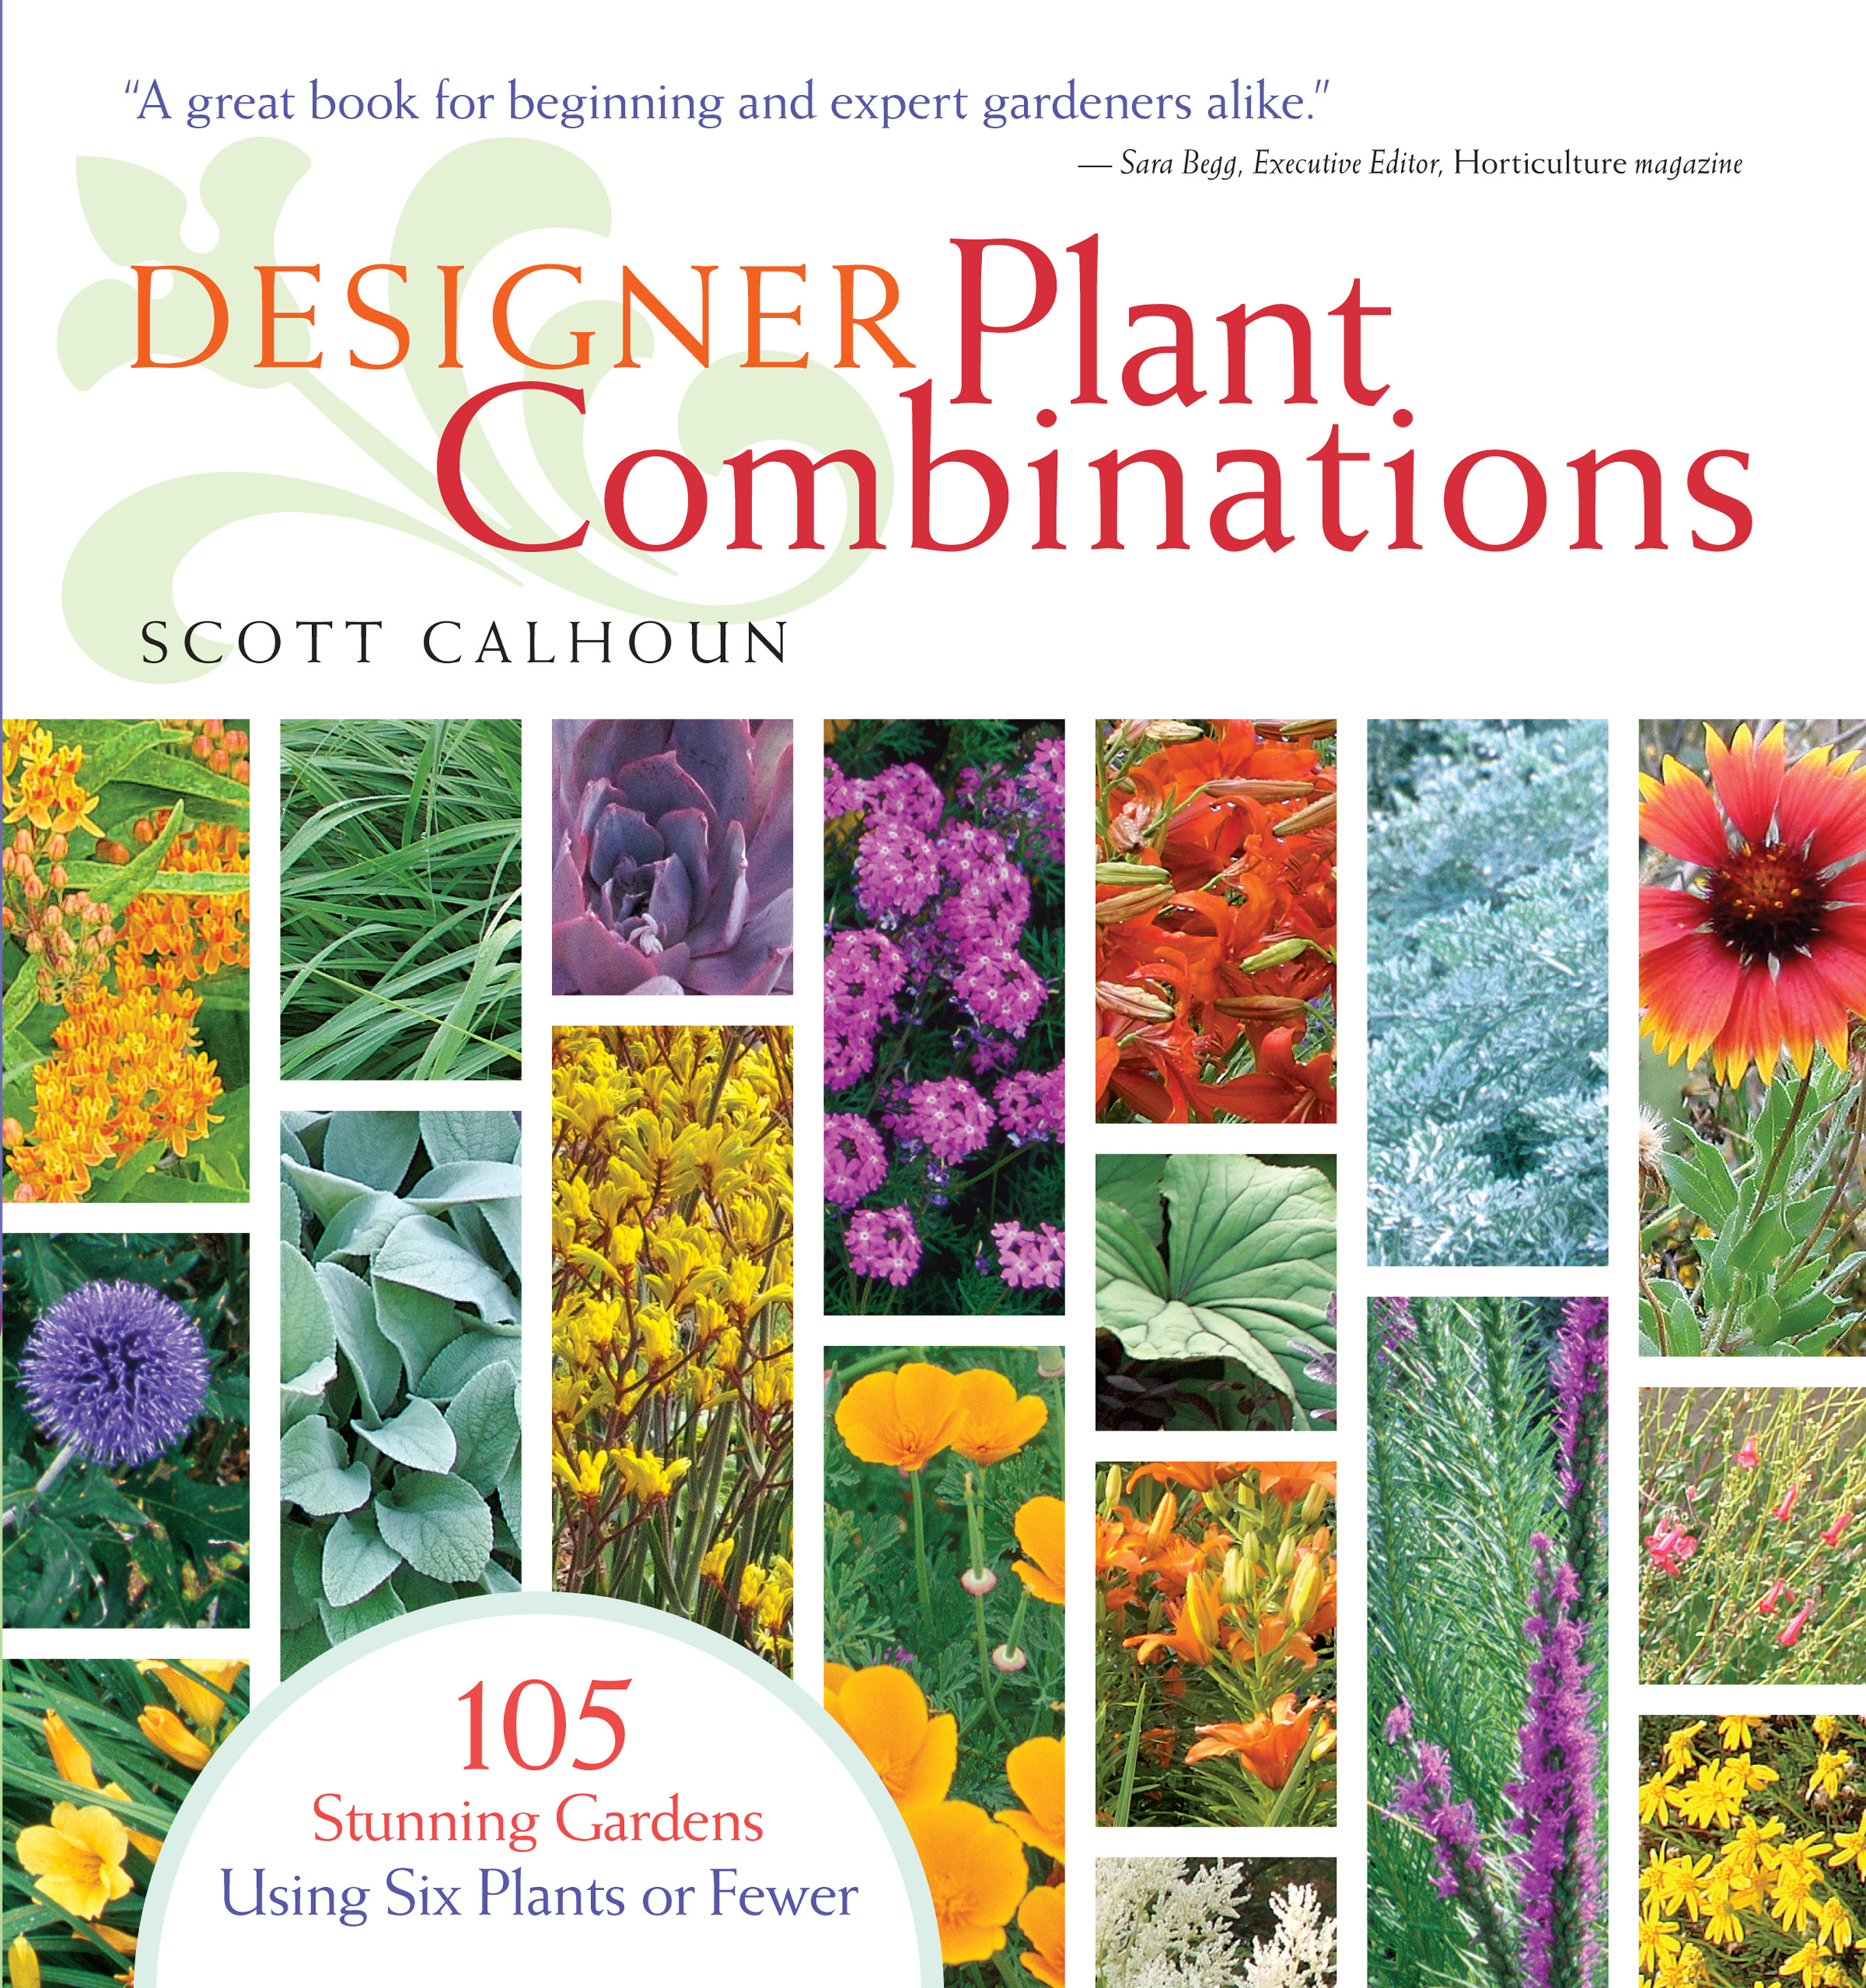 Designer Plant Combinations 105 Stunning Gardens Using Six Plants or Fewer